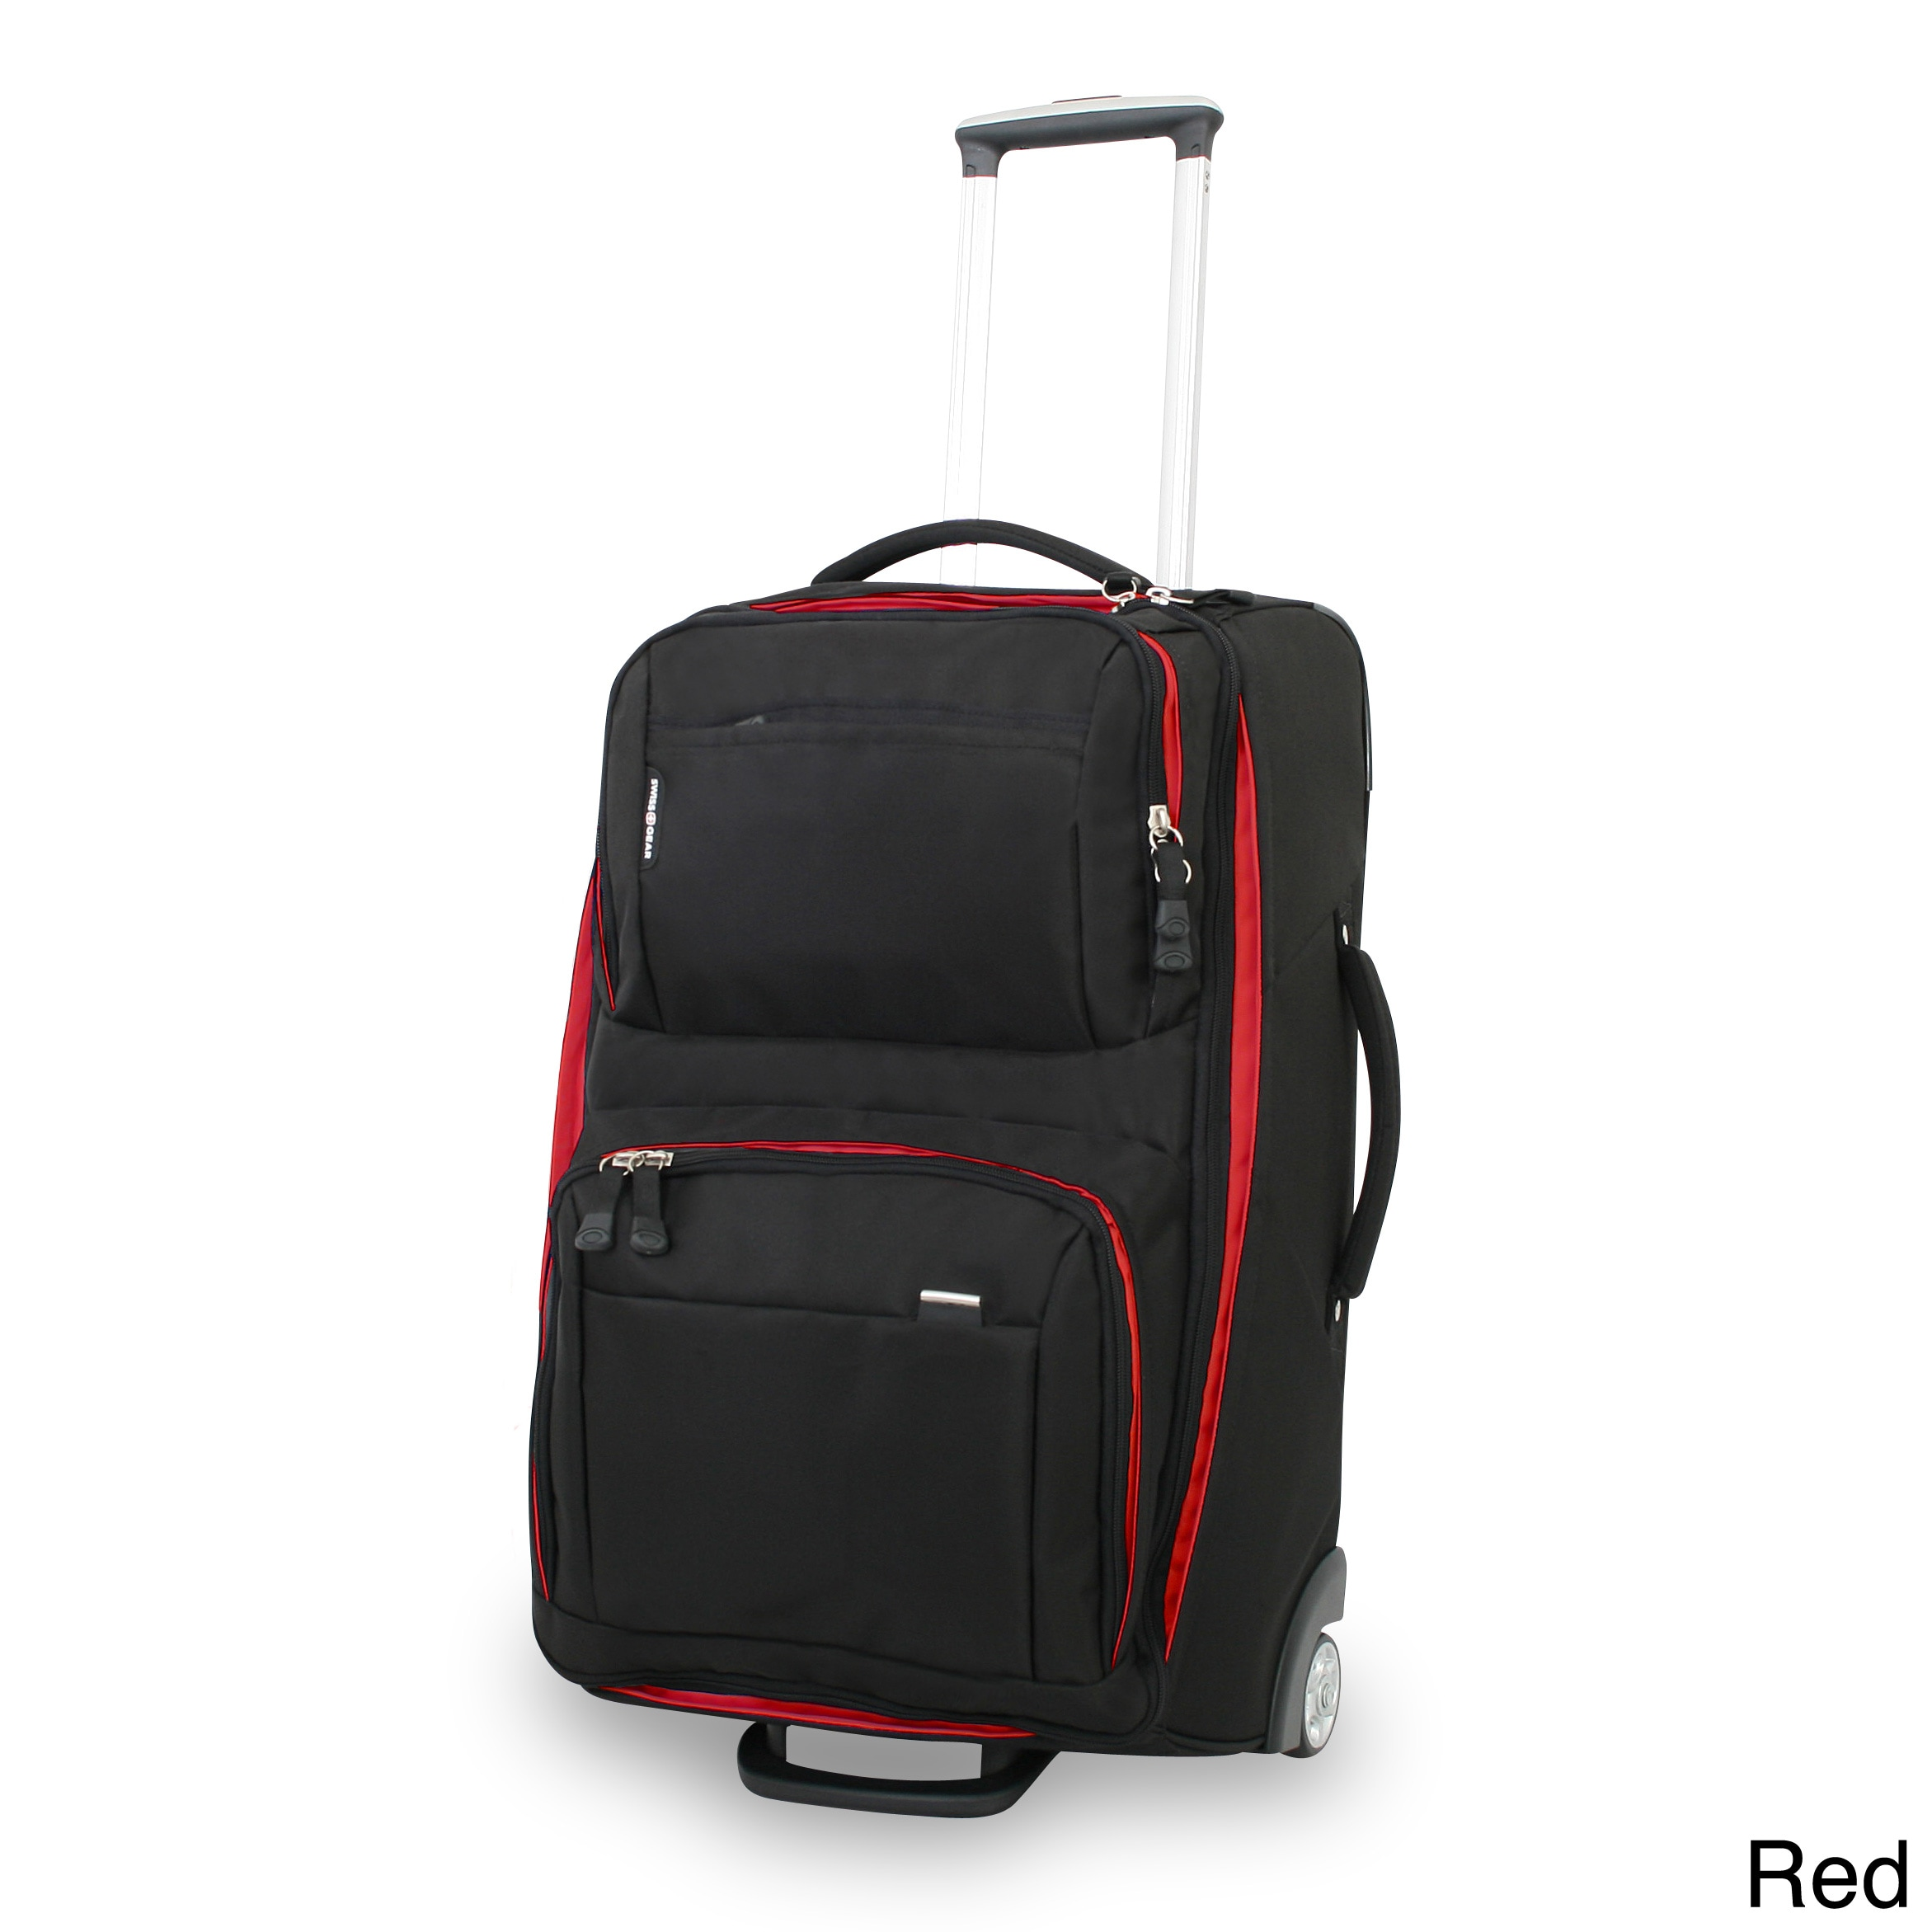 21ba3fce8760 Wenger Swiss Gear Sports 28 inch Rolling Lightweight Upright Suitcase  (PolyesterColor options Black with red